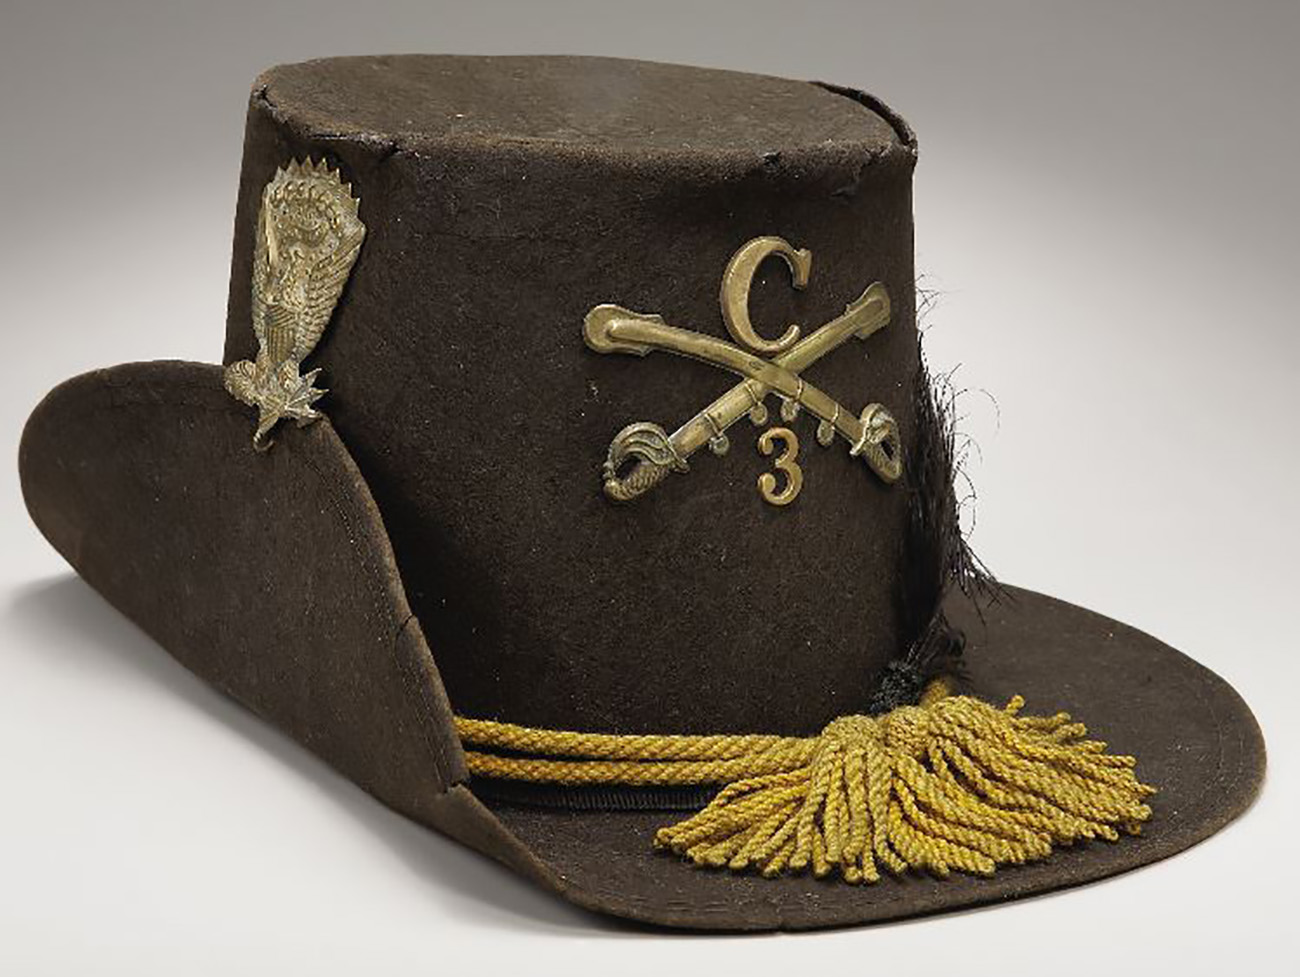 The Hardee hat was made of felt and had been in use since before the Civil War, the yellow cords indicated the cavalry and it at least offered some protection from the sun and rain